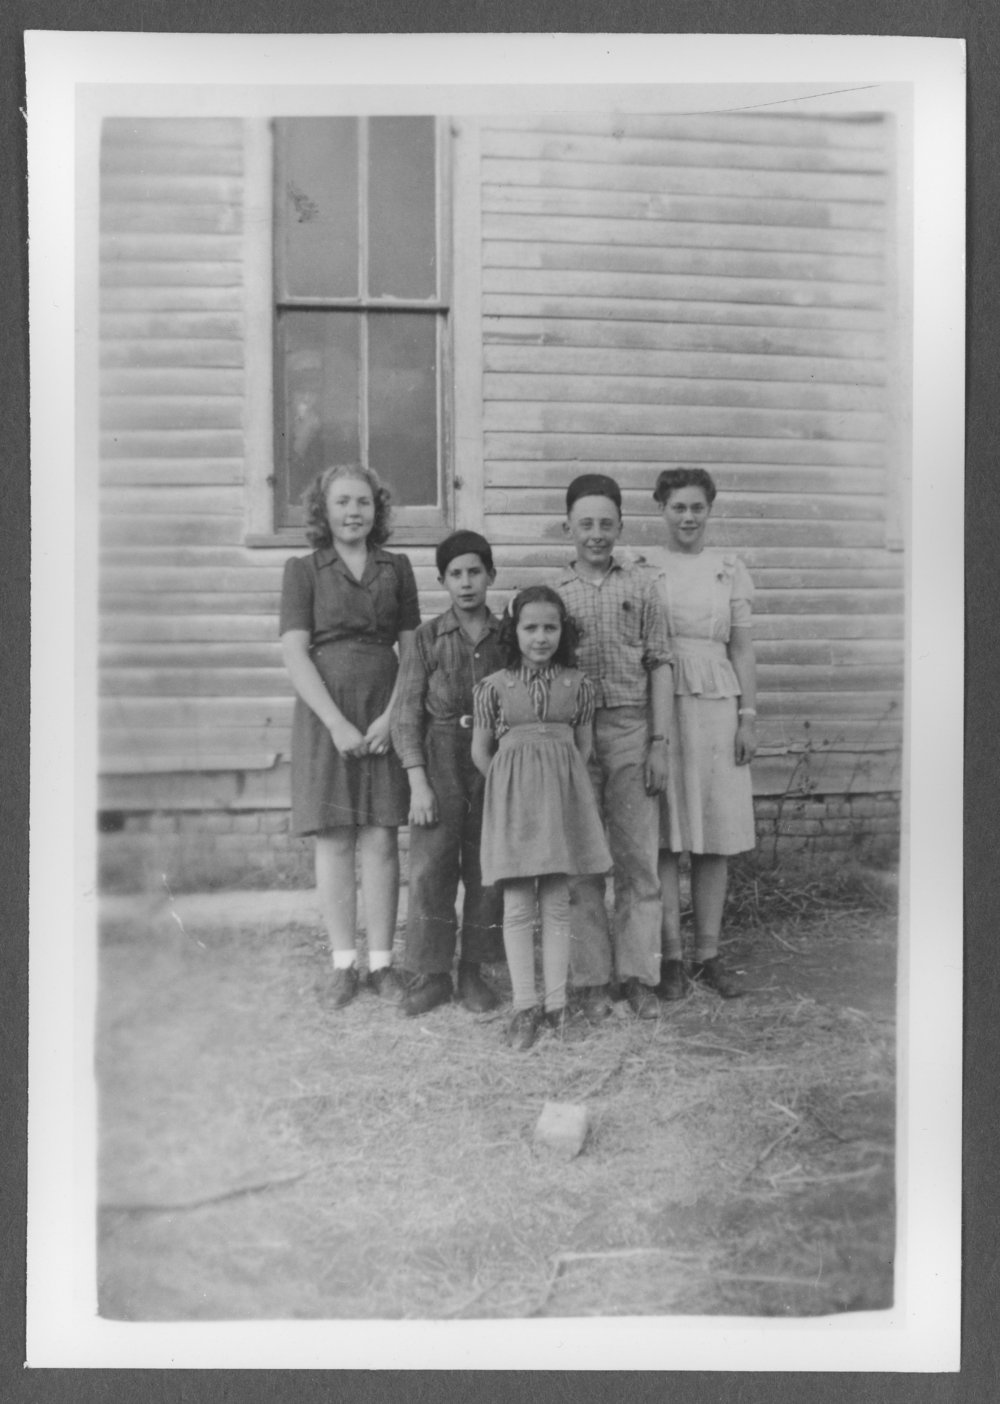 Scenes of Sherman County, Kansas - The last class at Victor School, District 36, Spring 1946.